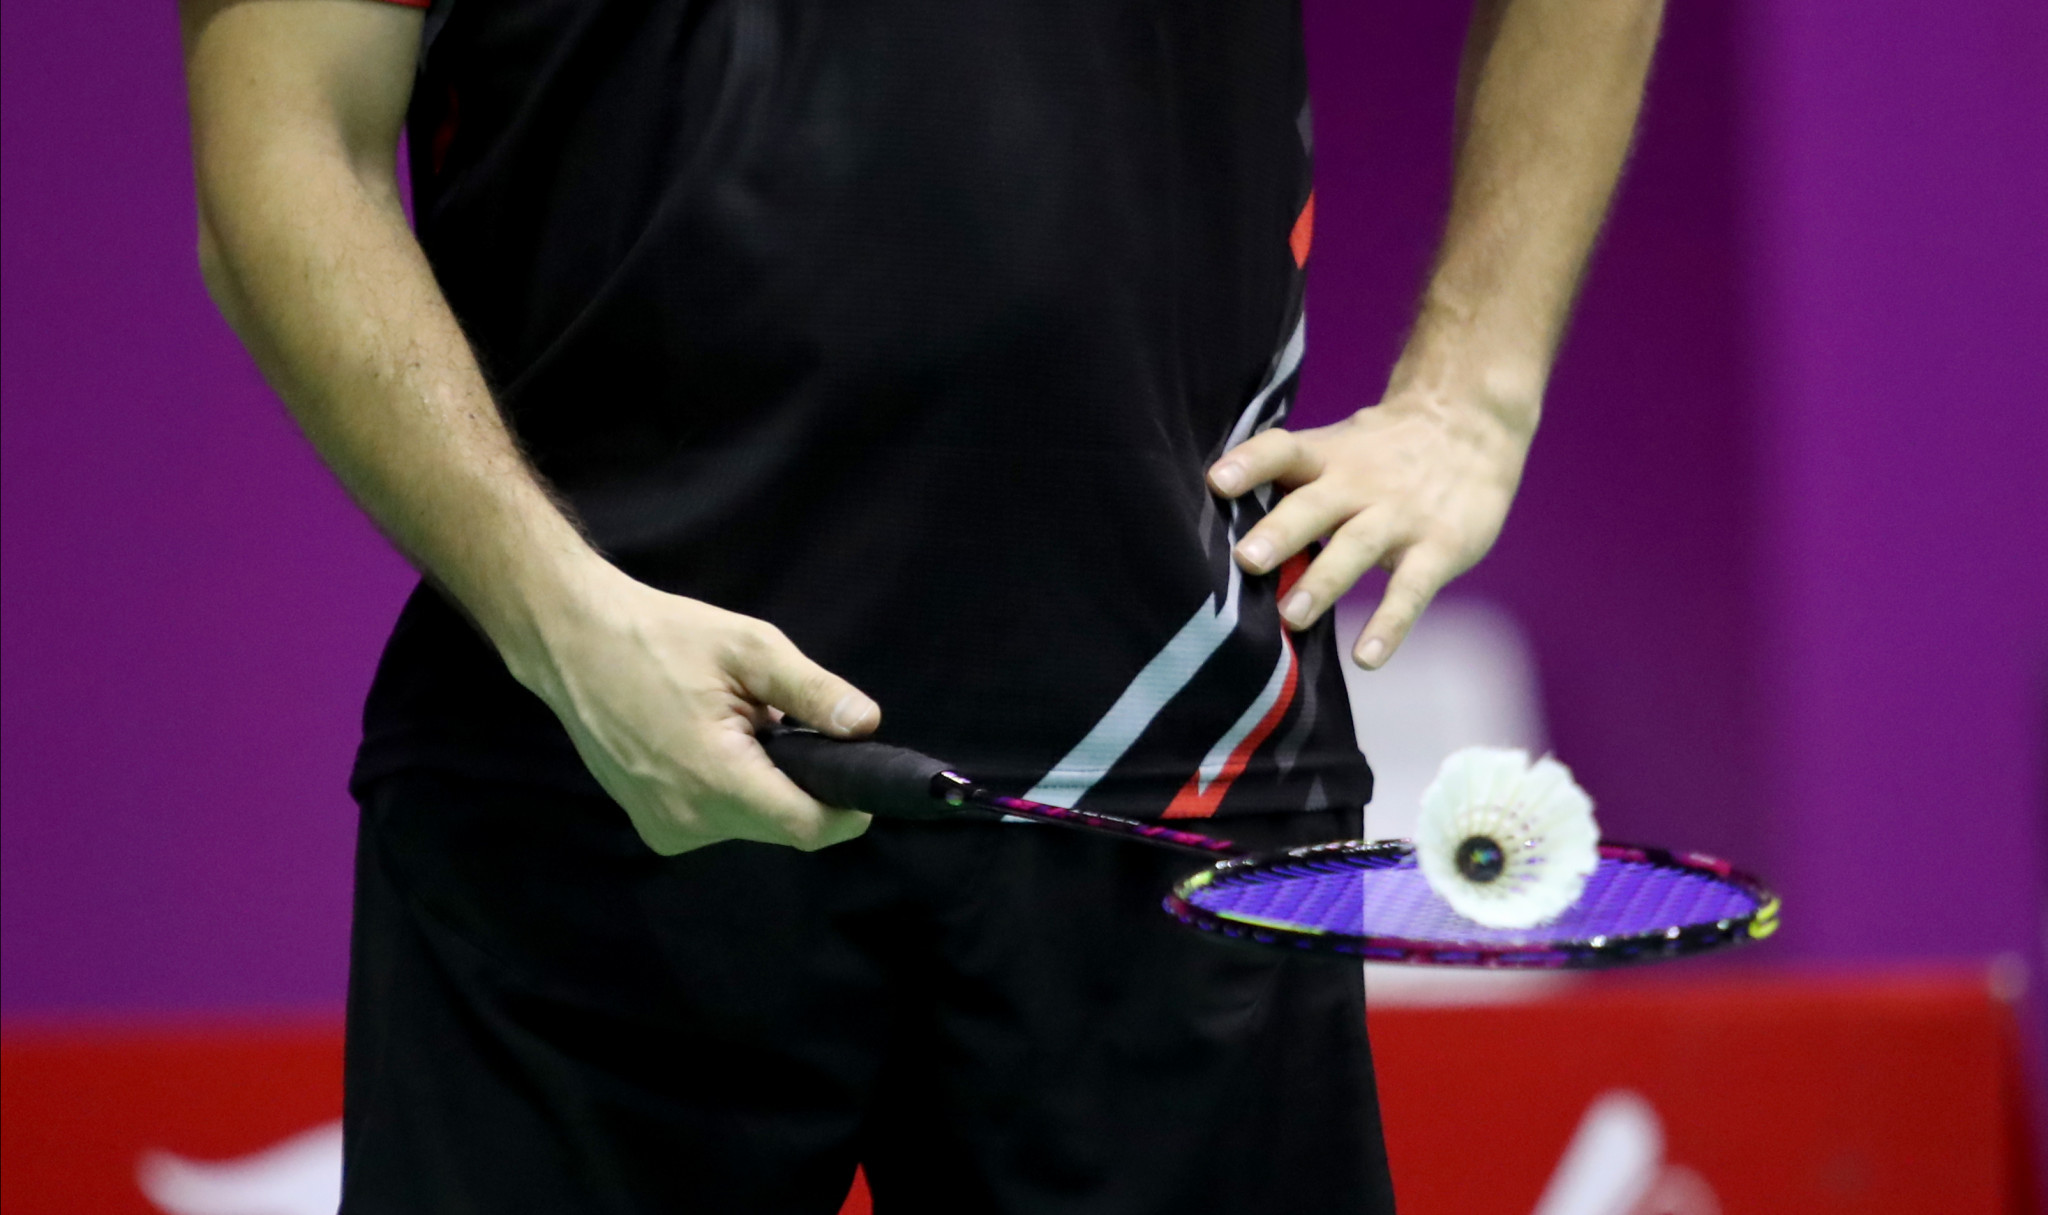 France's Gailly earns surprise early win at Spanish Para Badminton International in Cartagena